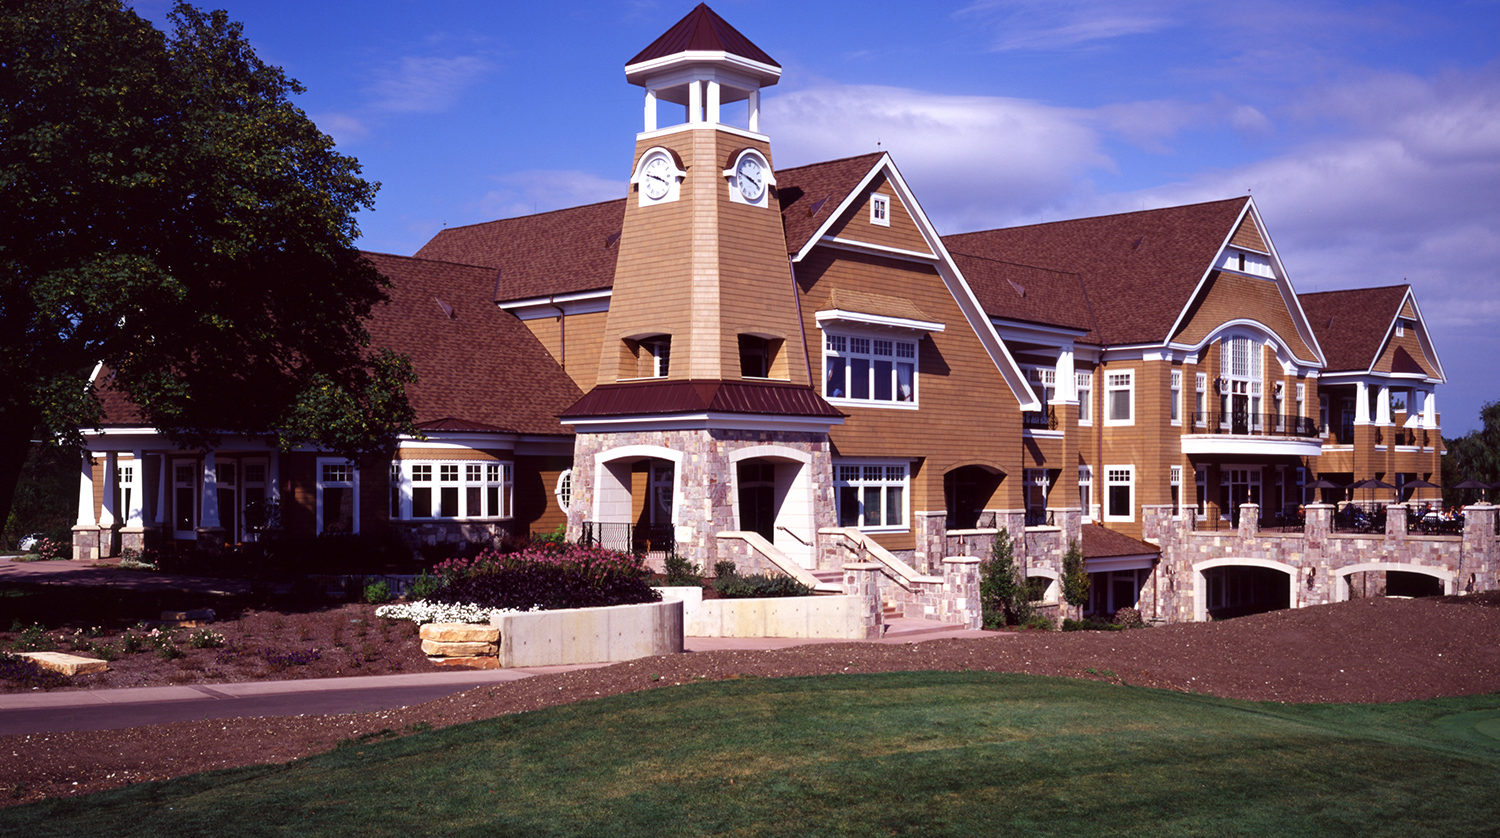 Wheaton Park District Arrowhead Golf Clubhouse exterior 3